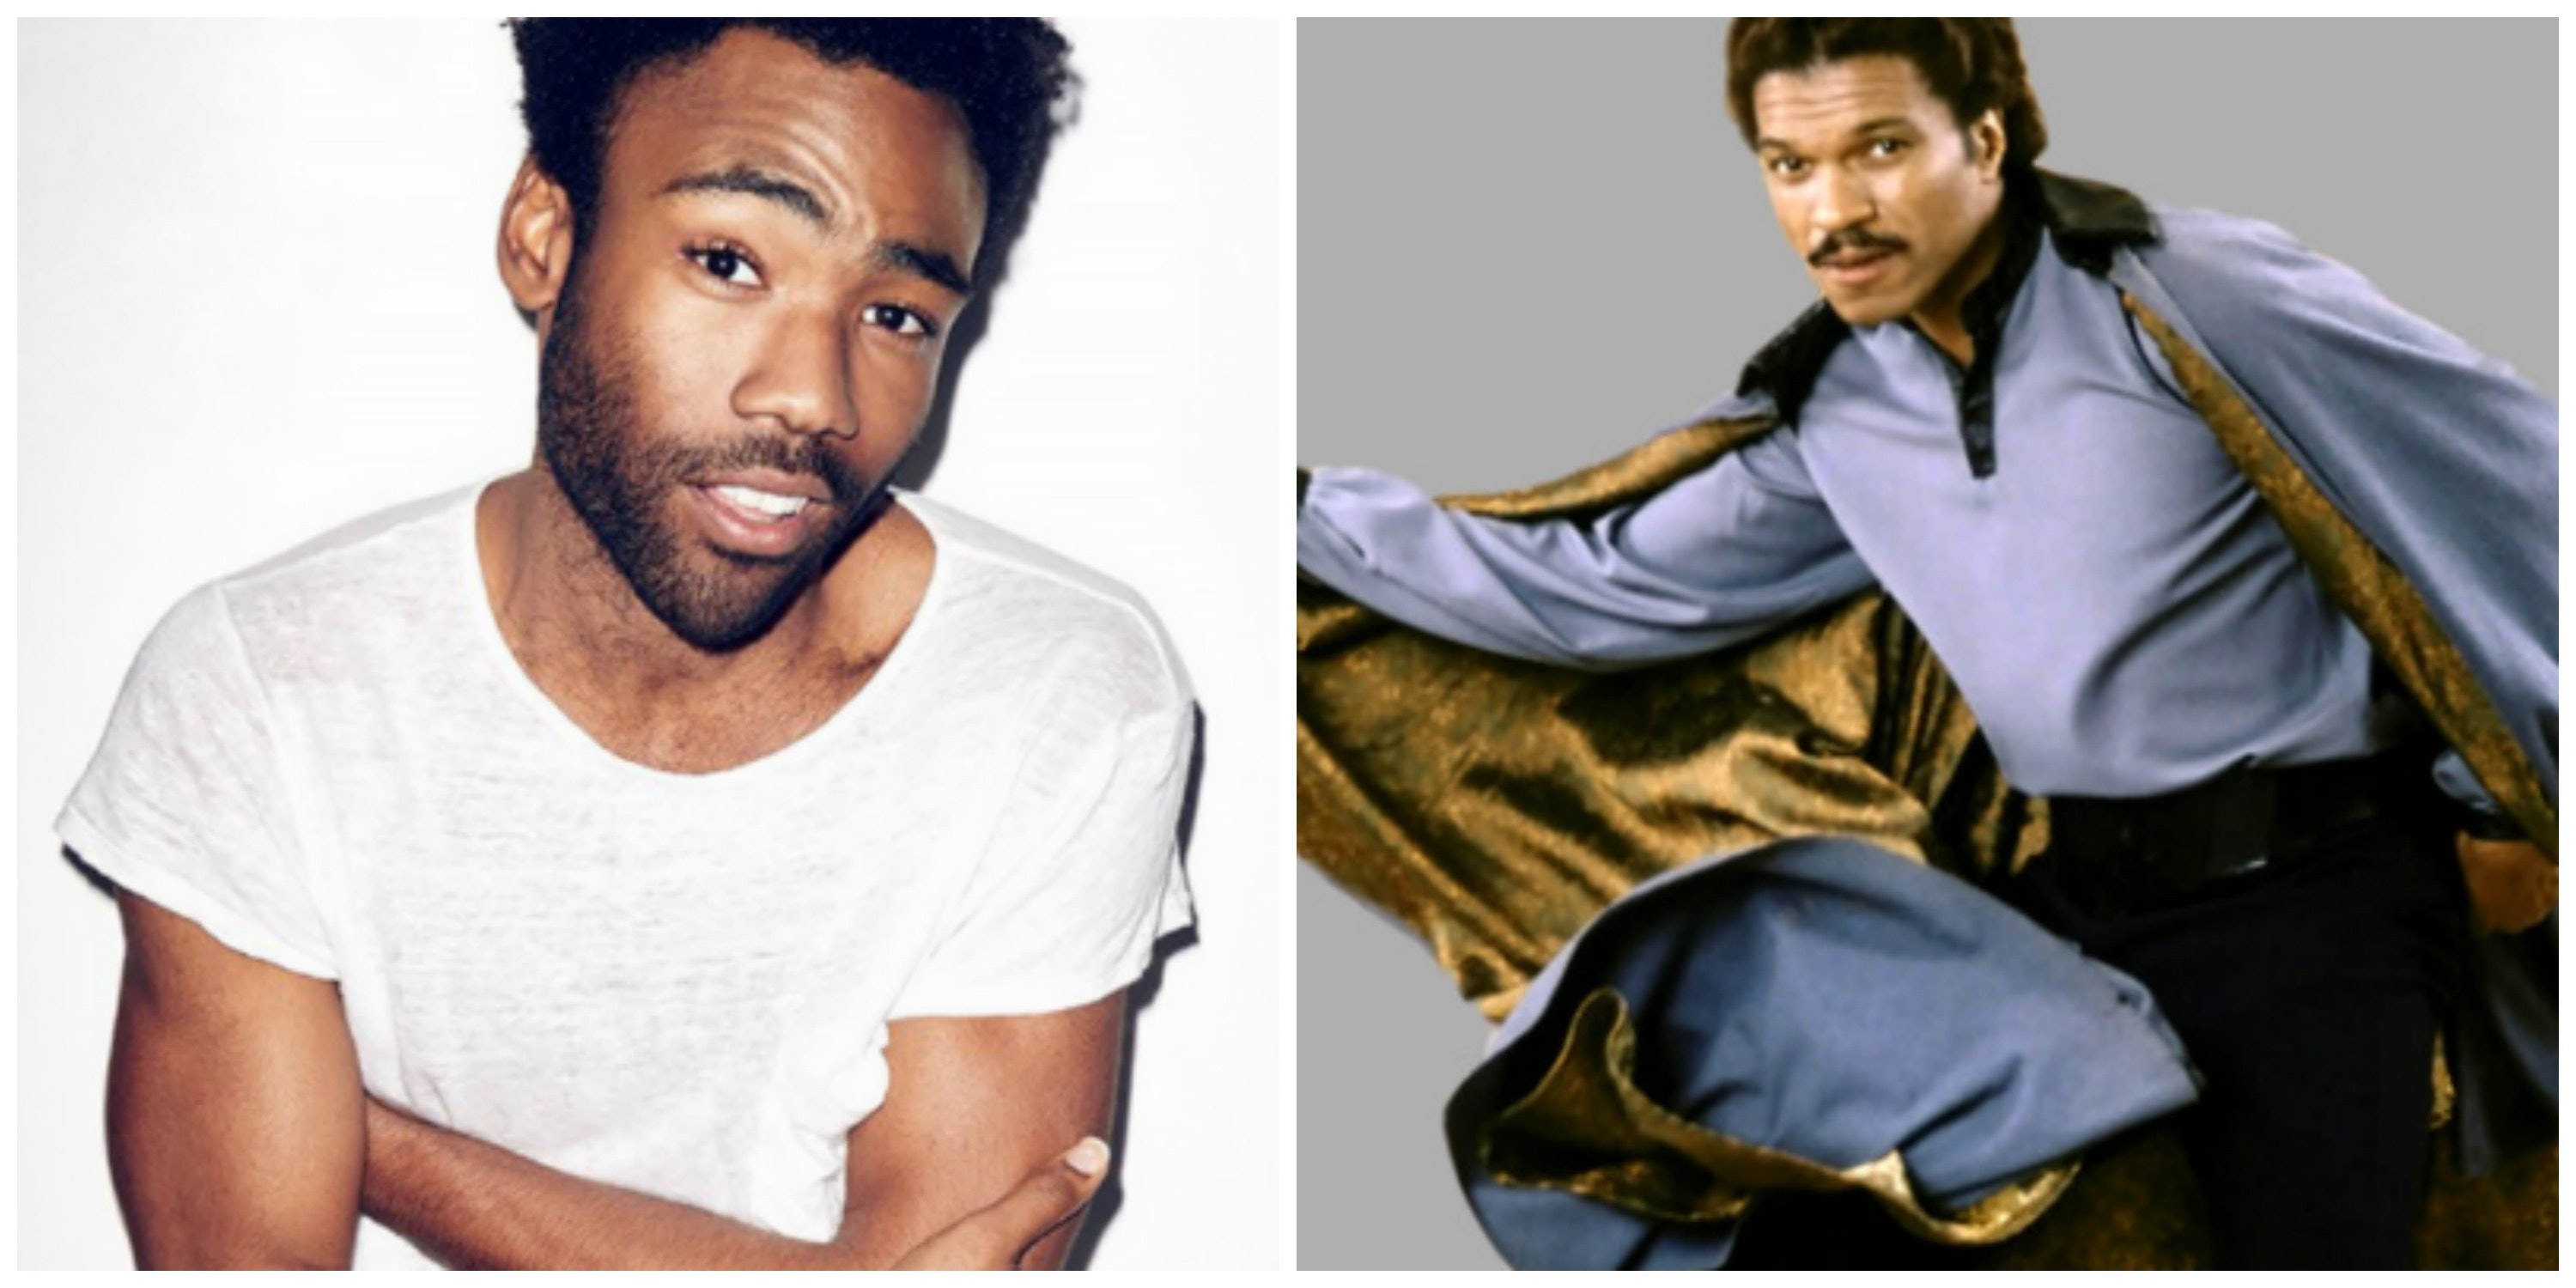 Lando Calrissian Will Be Fit AF in 'Star Wars' Han Solo Movie